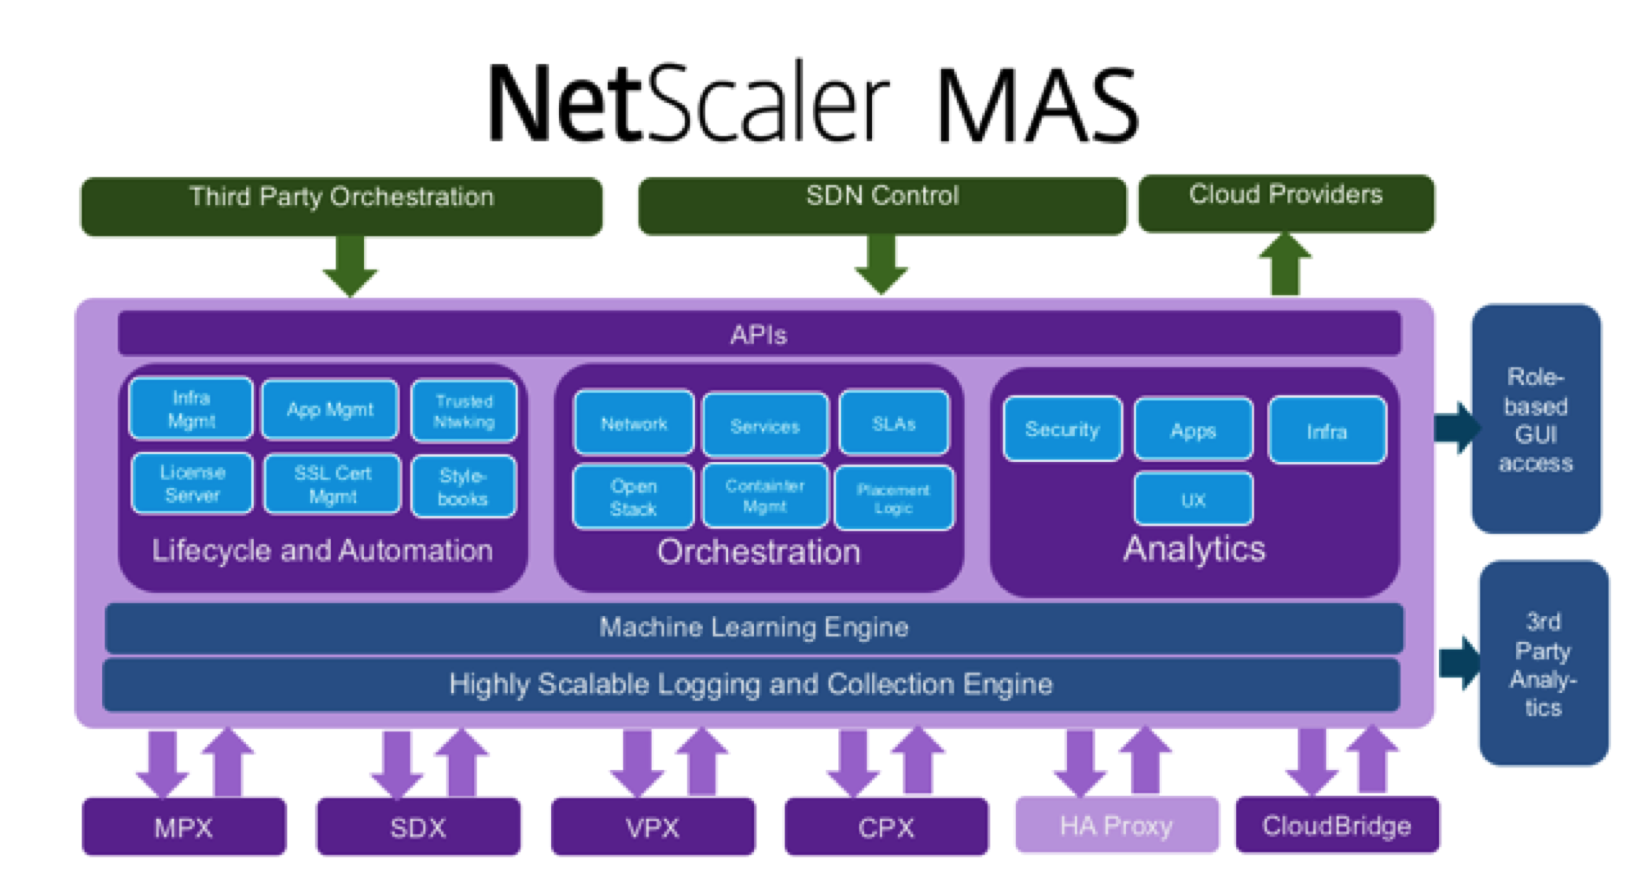 NetScaler 11.1 Management and Analysis System